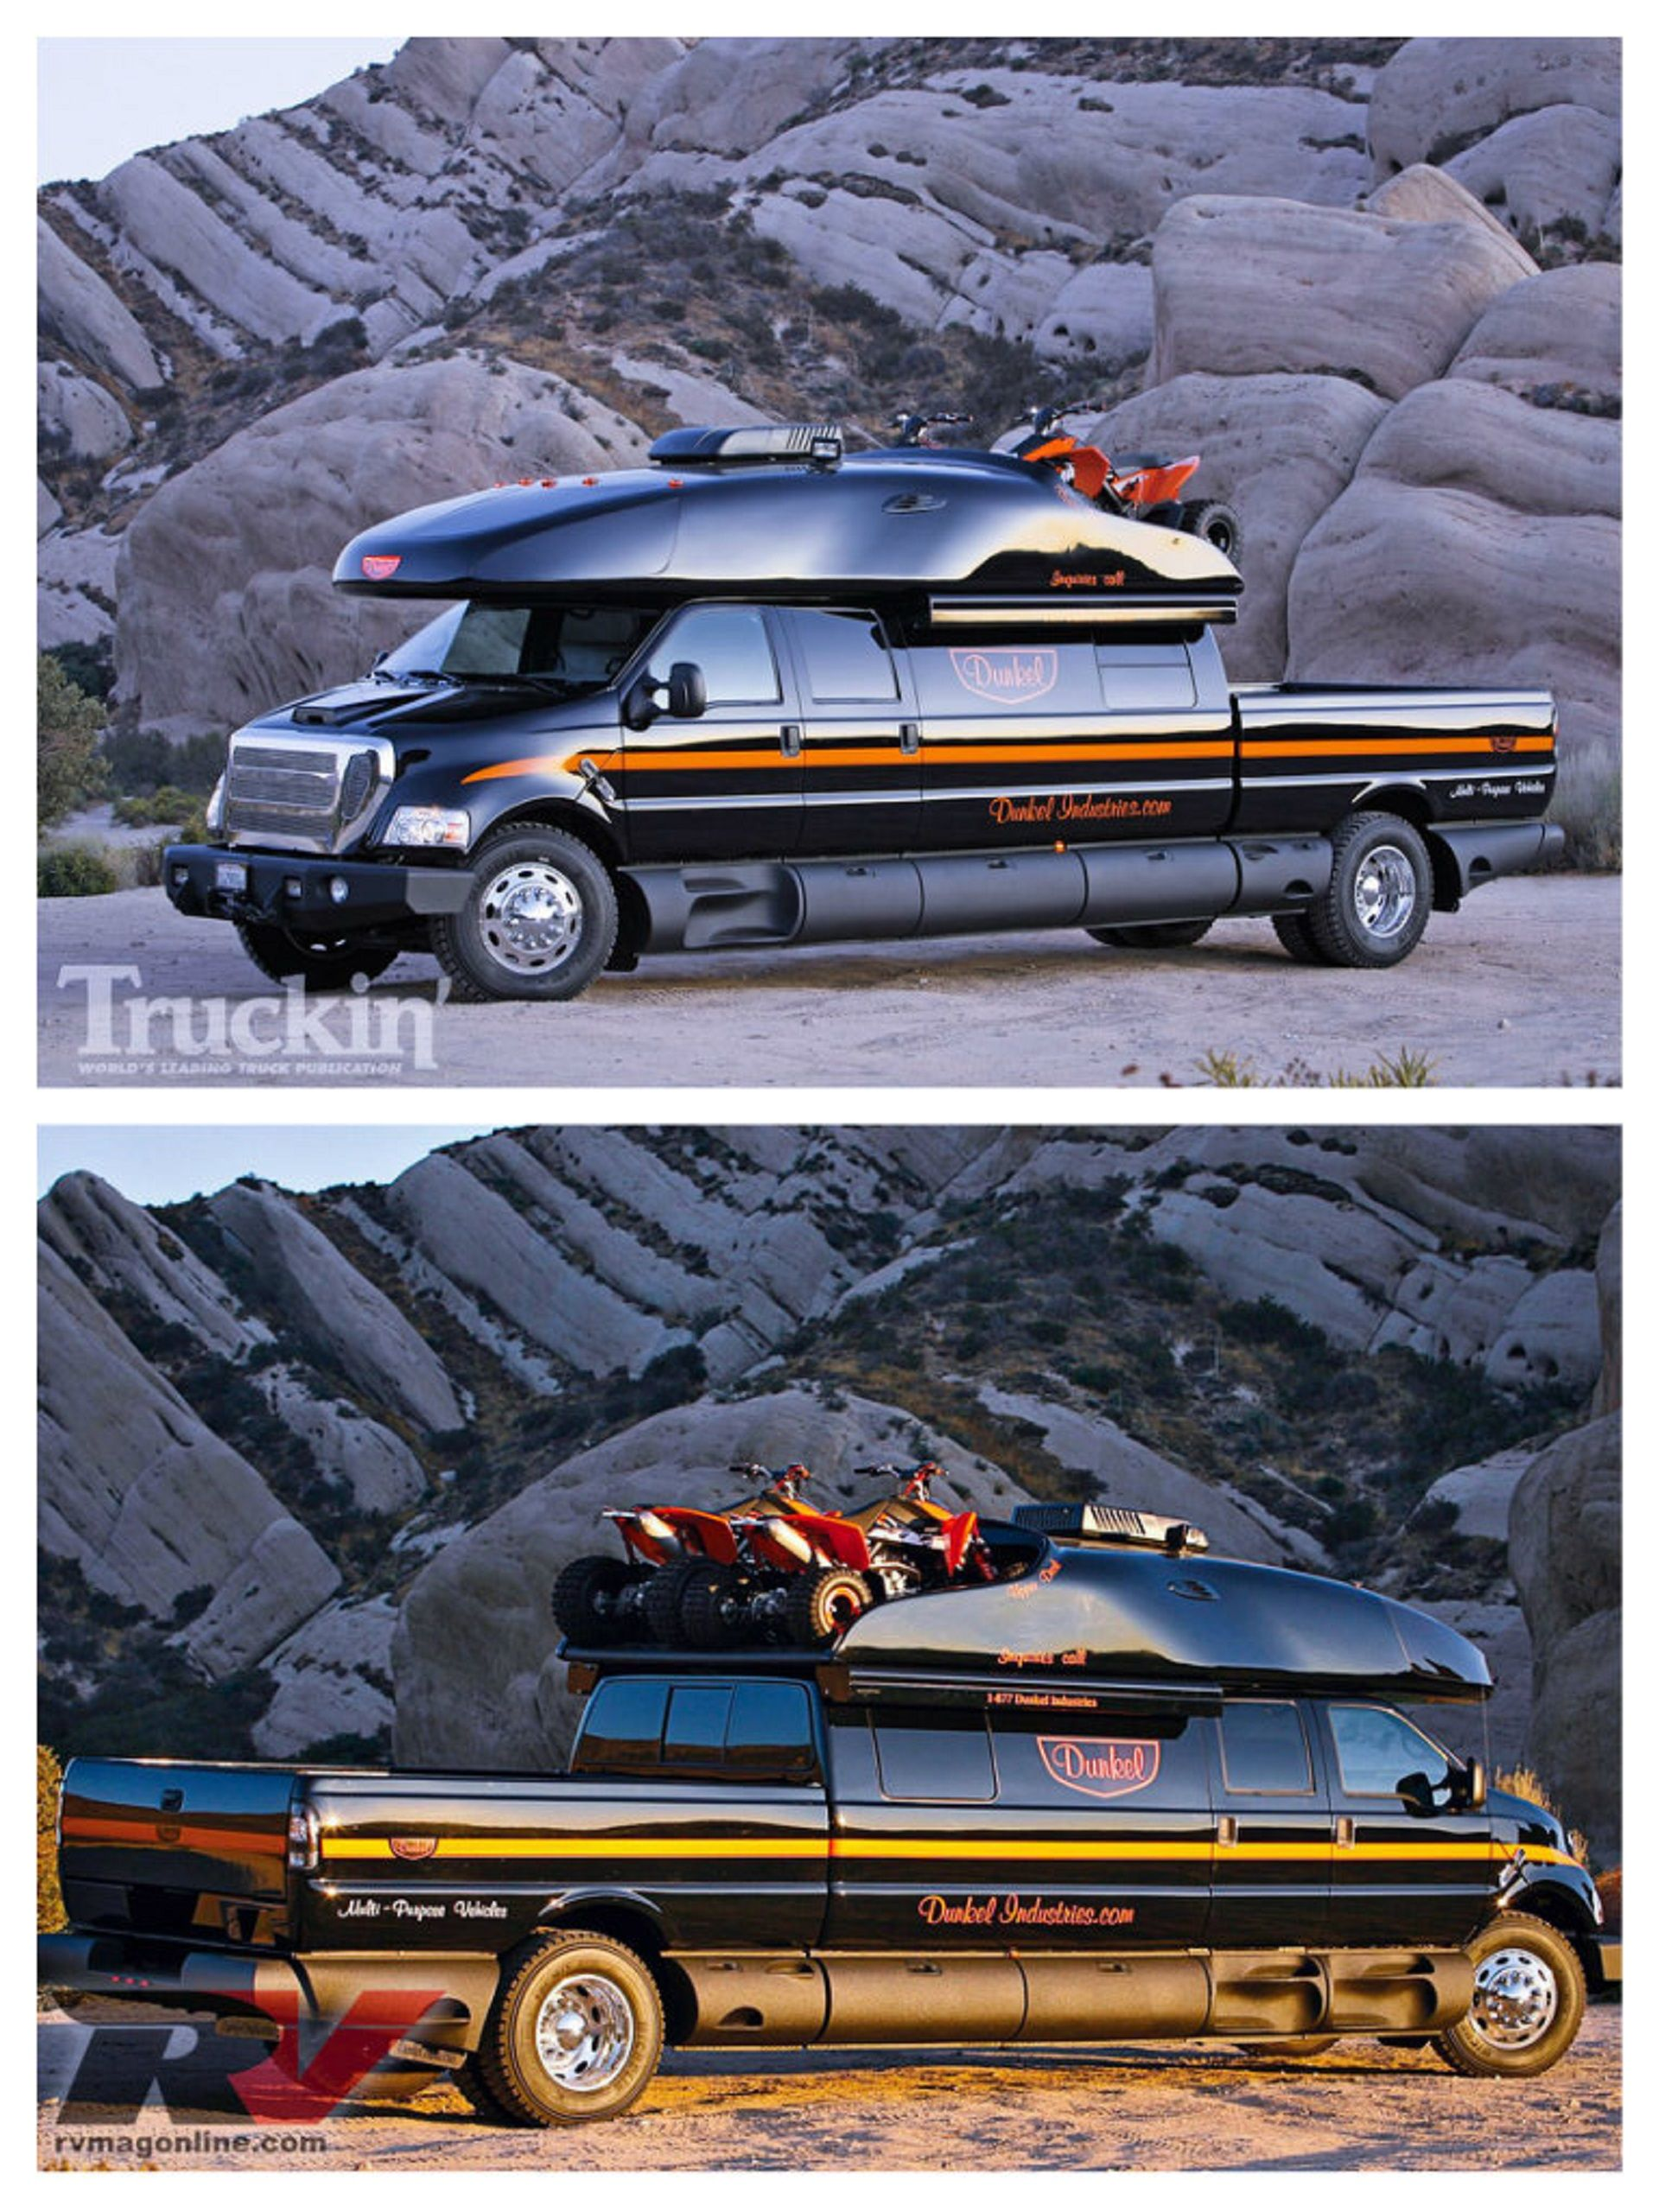 dunkel industries luxury ford f-650 4x4 expedition truck. http